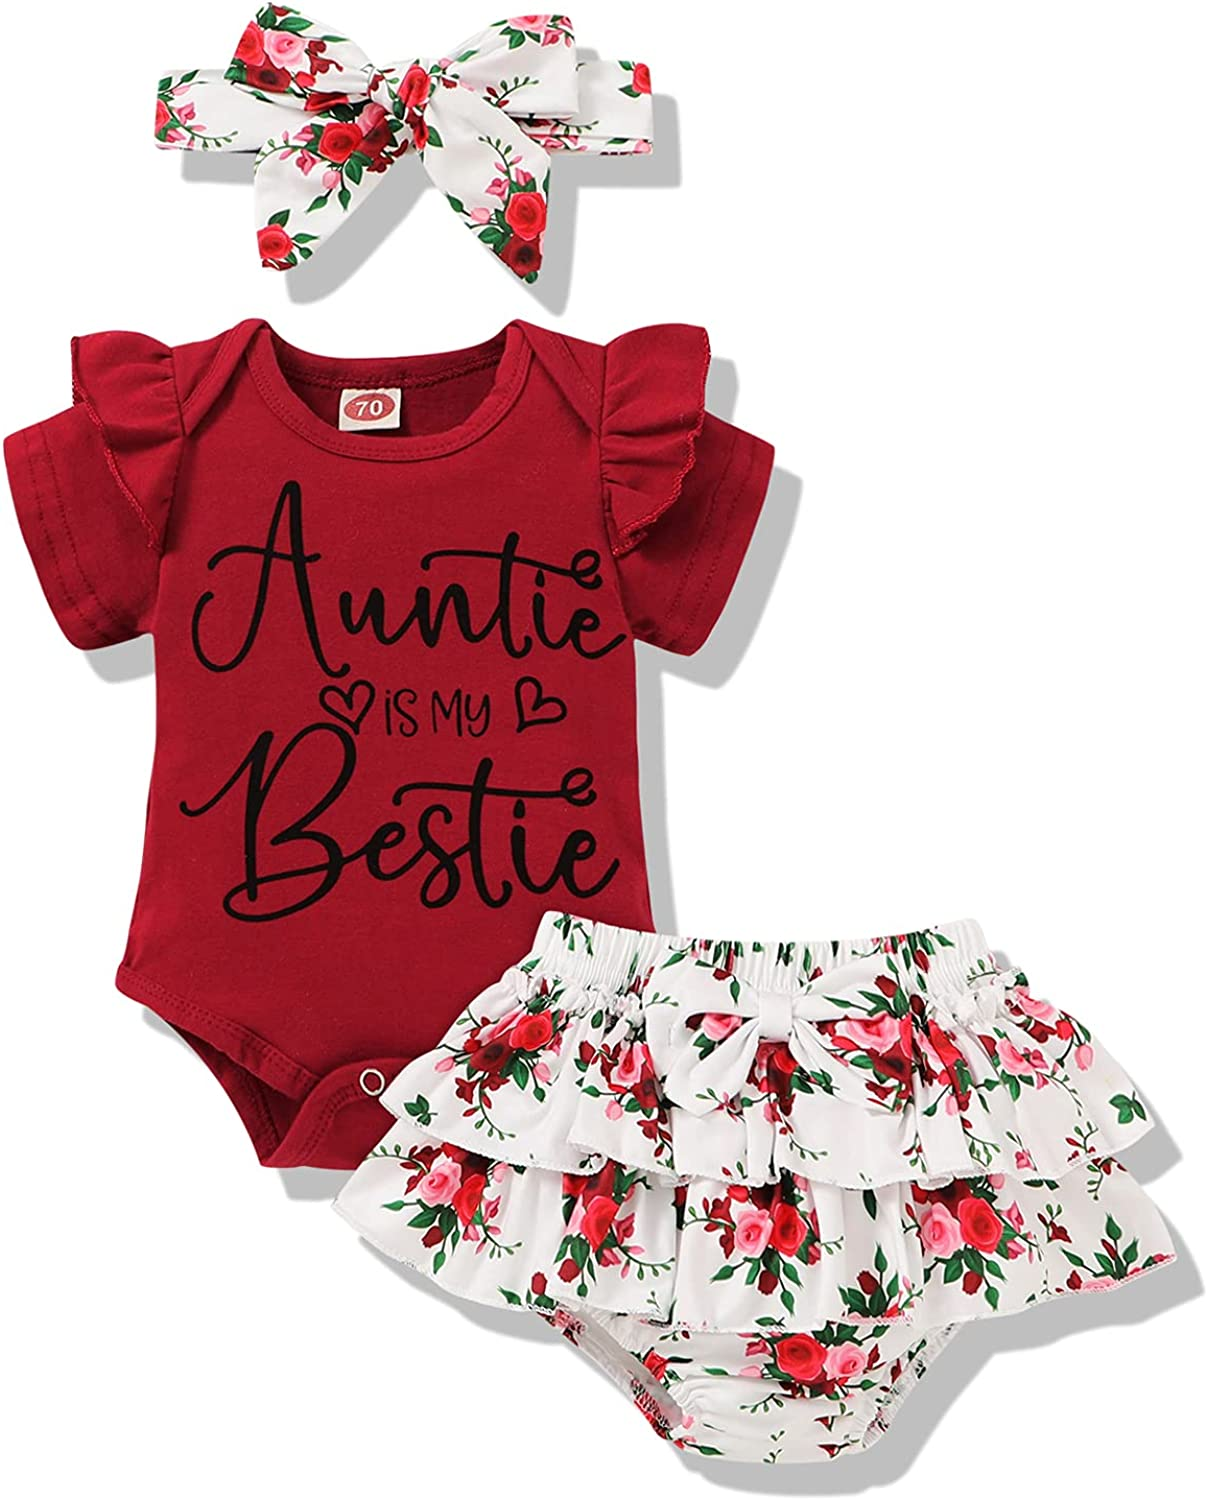 Newborn Baby Girl Auntie Clothes Auntie Is My Bestie Romper Shorts with Headband Girl Auntie Outfits